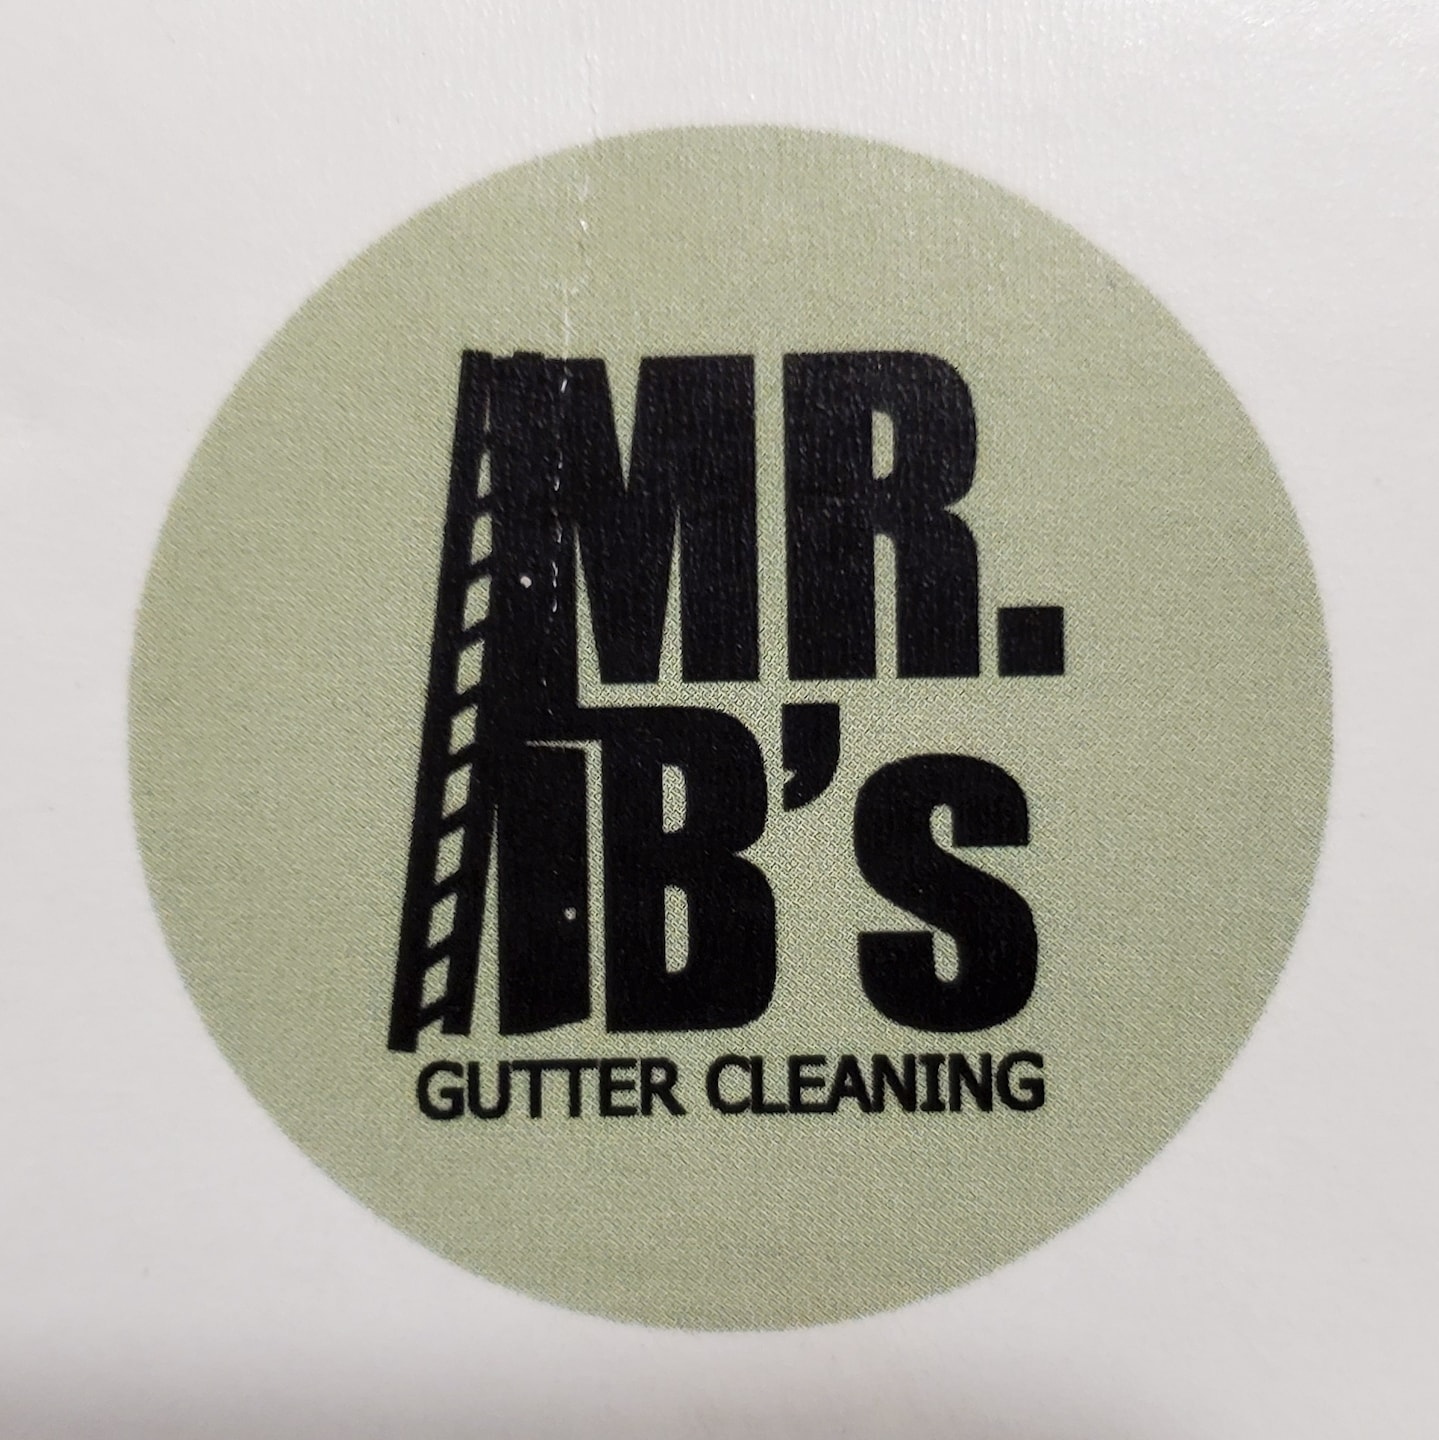 Mr.B's Gutter Cleaning